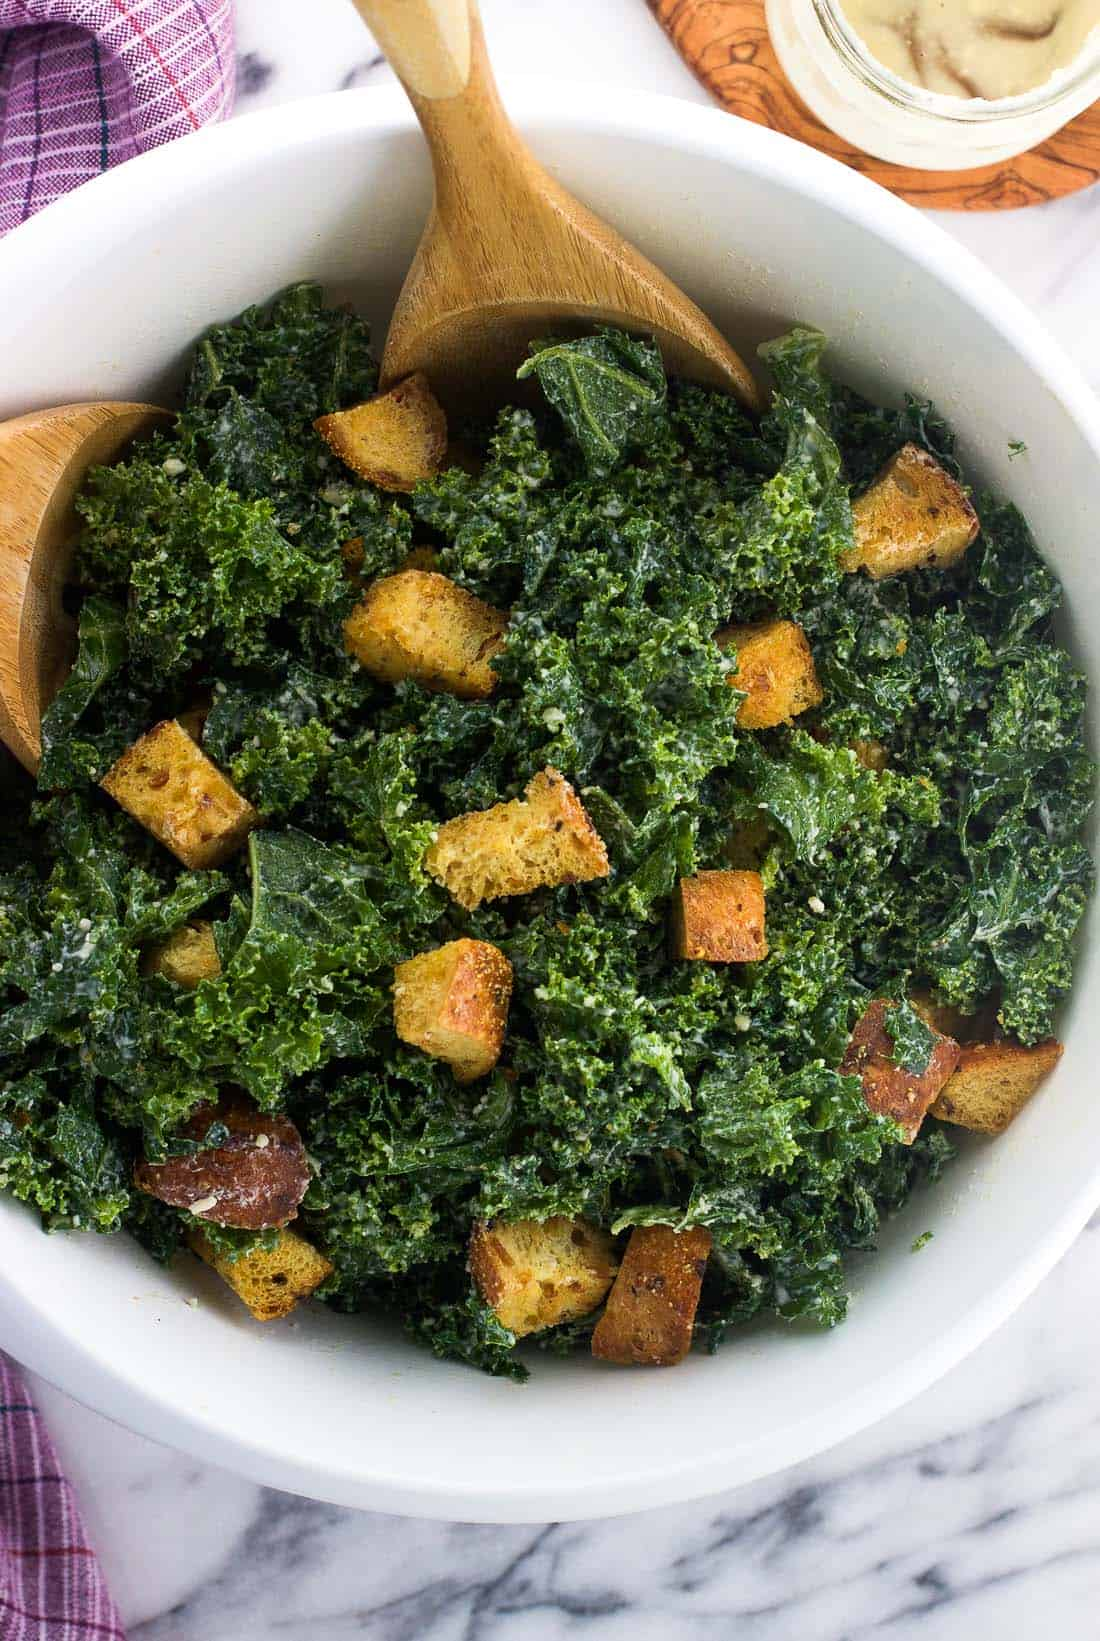 Massaged kale caesar salad in a big mixing bowl with croutons and salad tongs